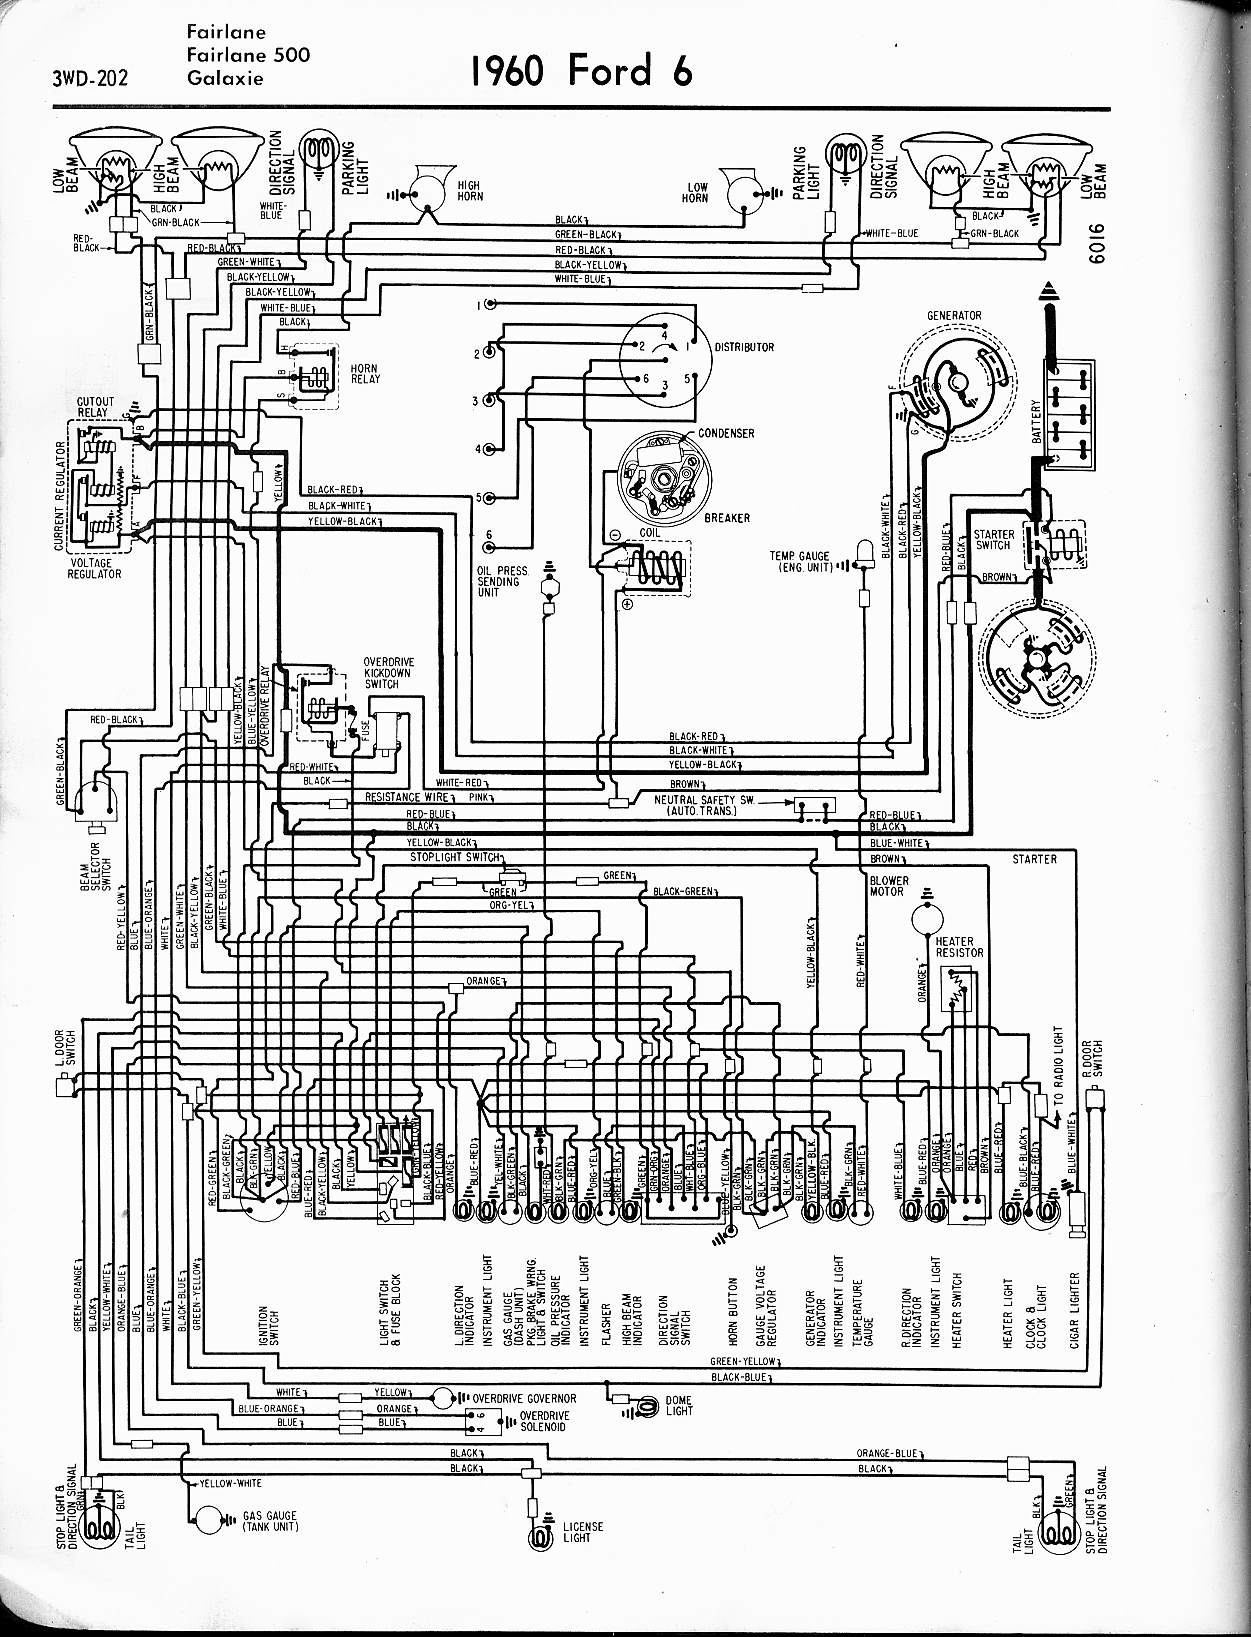 1957 Ford Light Switch Wiring Diagram Data For Turn Signals 57 65 Diagrams Universal Signal